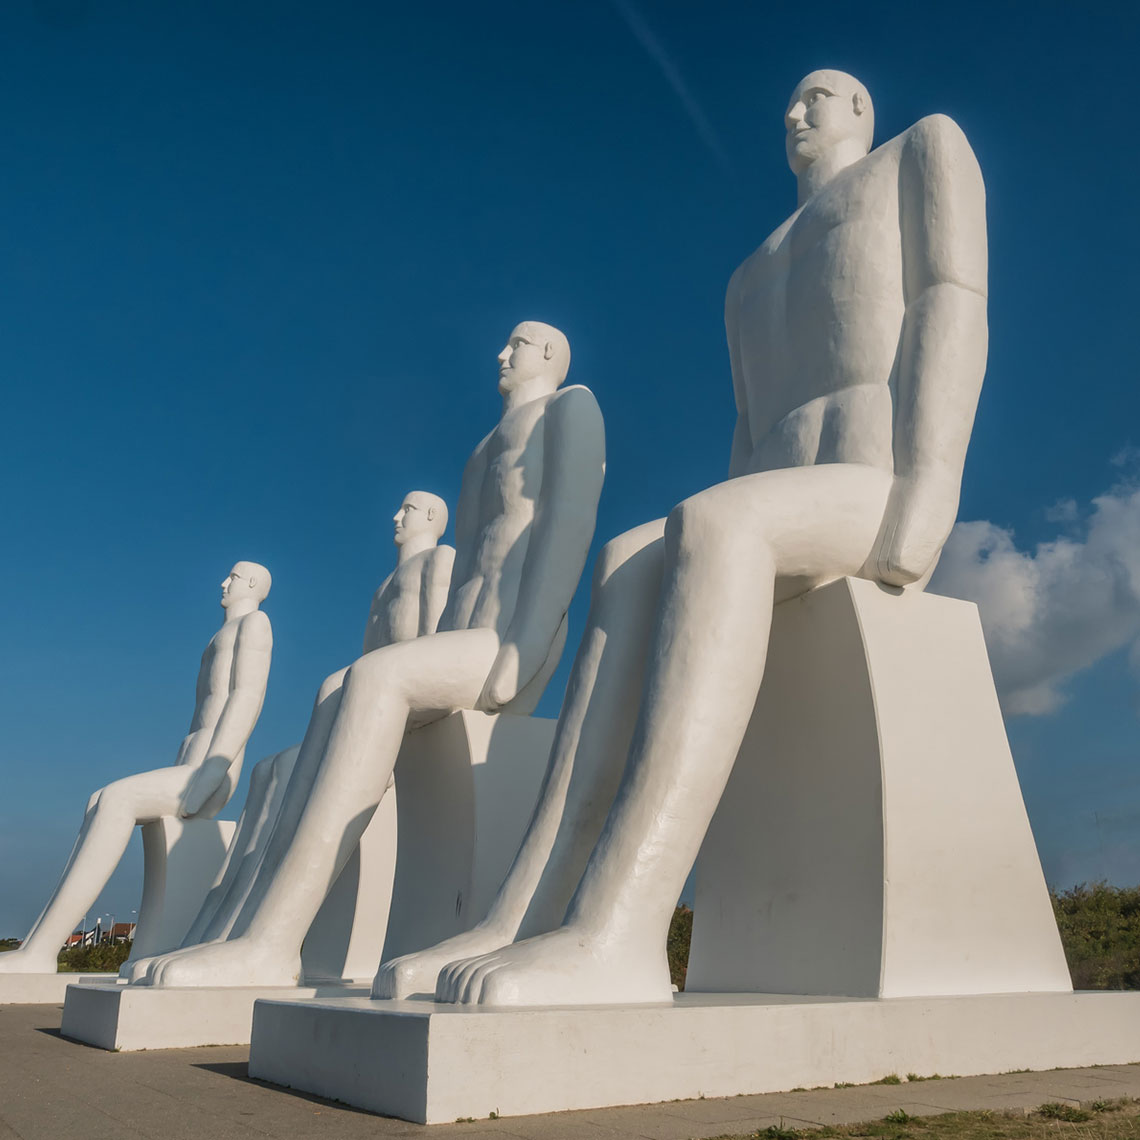 Esbjerg Statues